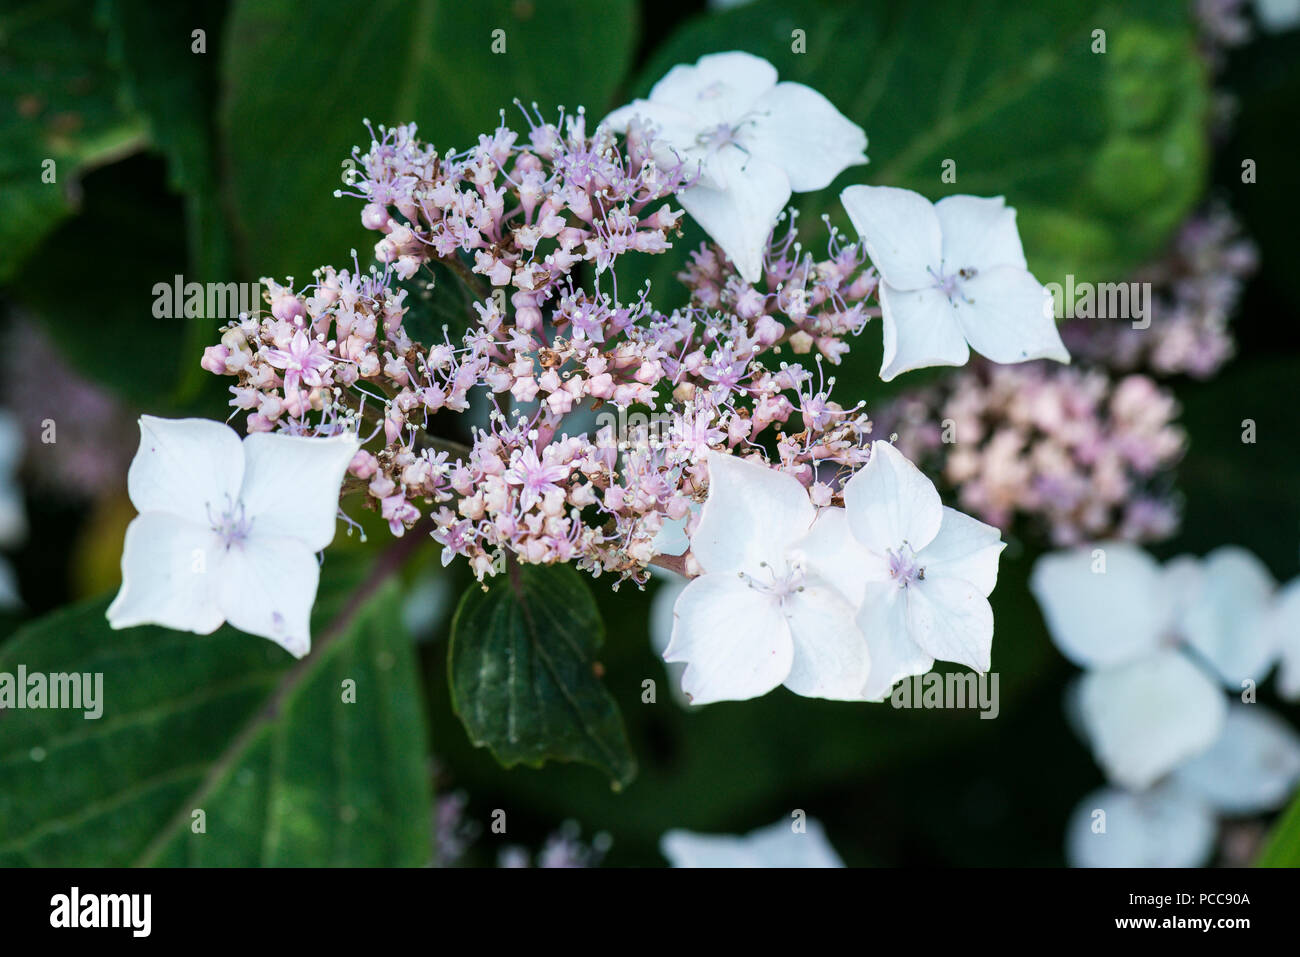 A close up of the flowers of a mountain hydrangea (Hydrangea serrata) Stock Photo